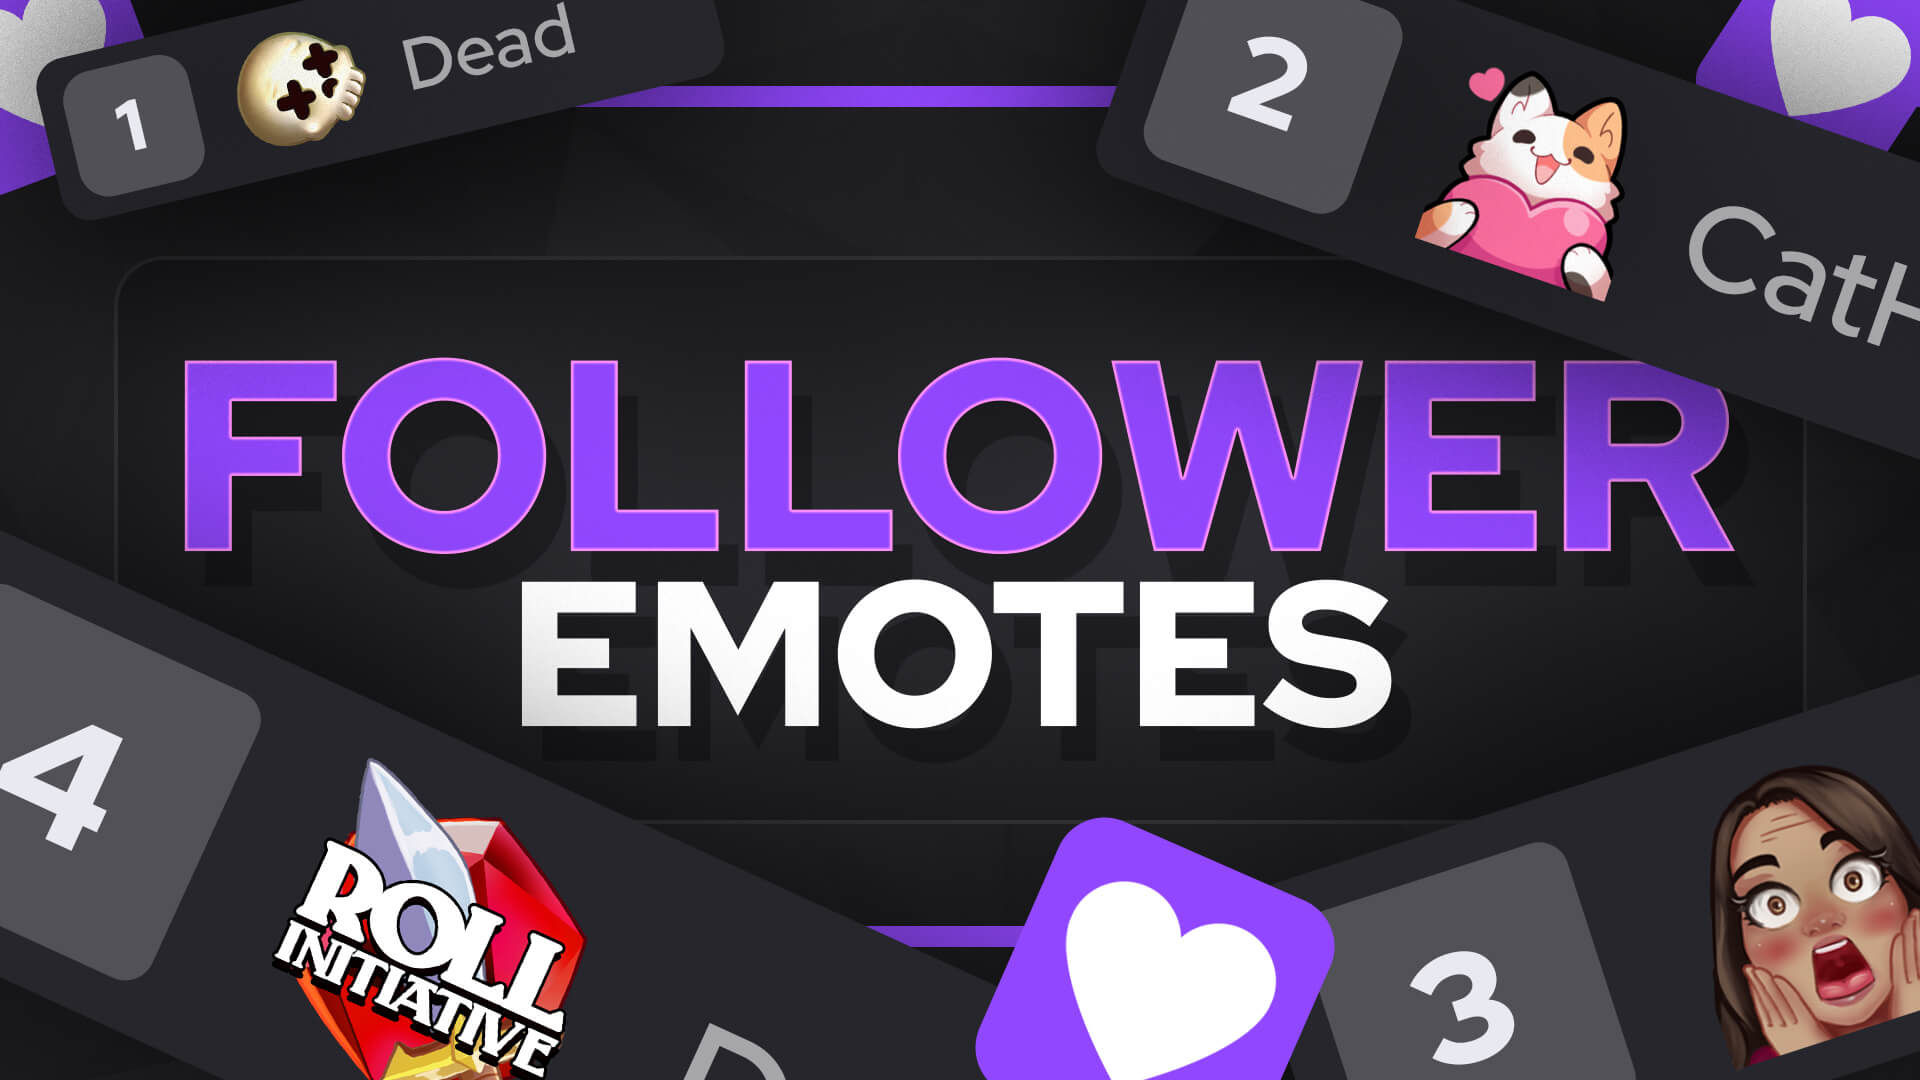 Twitch follower emotes guide